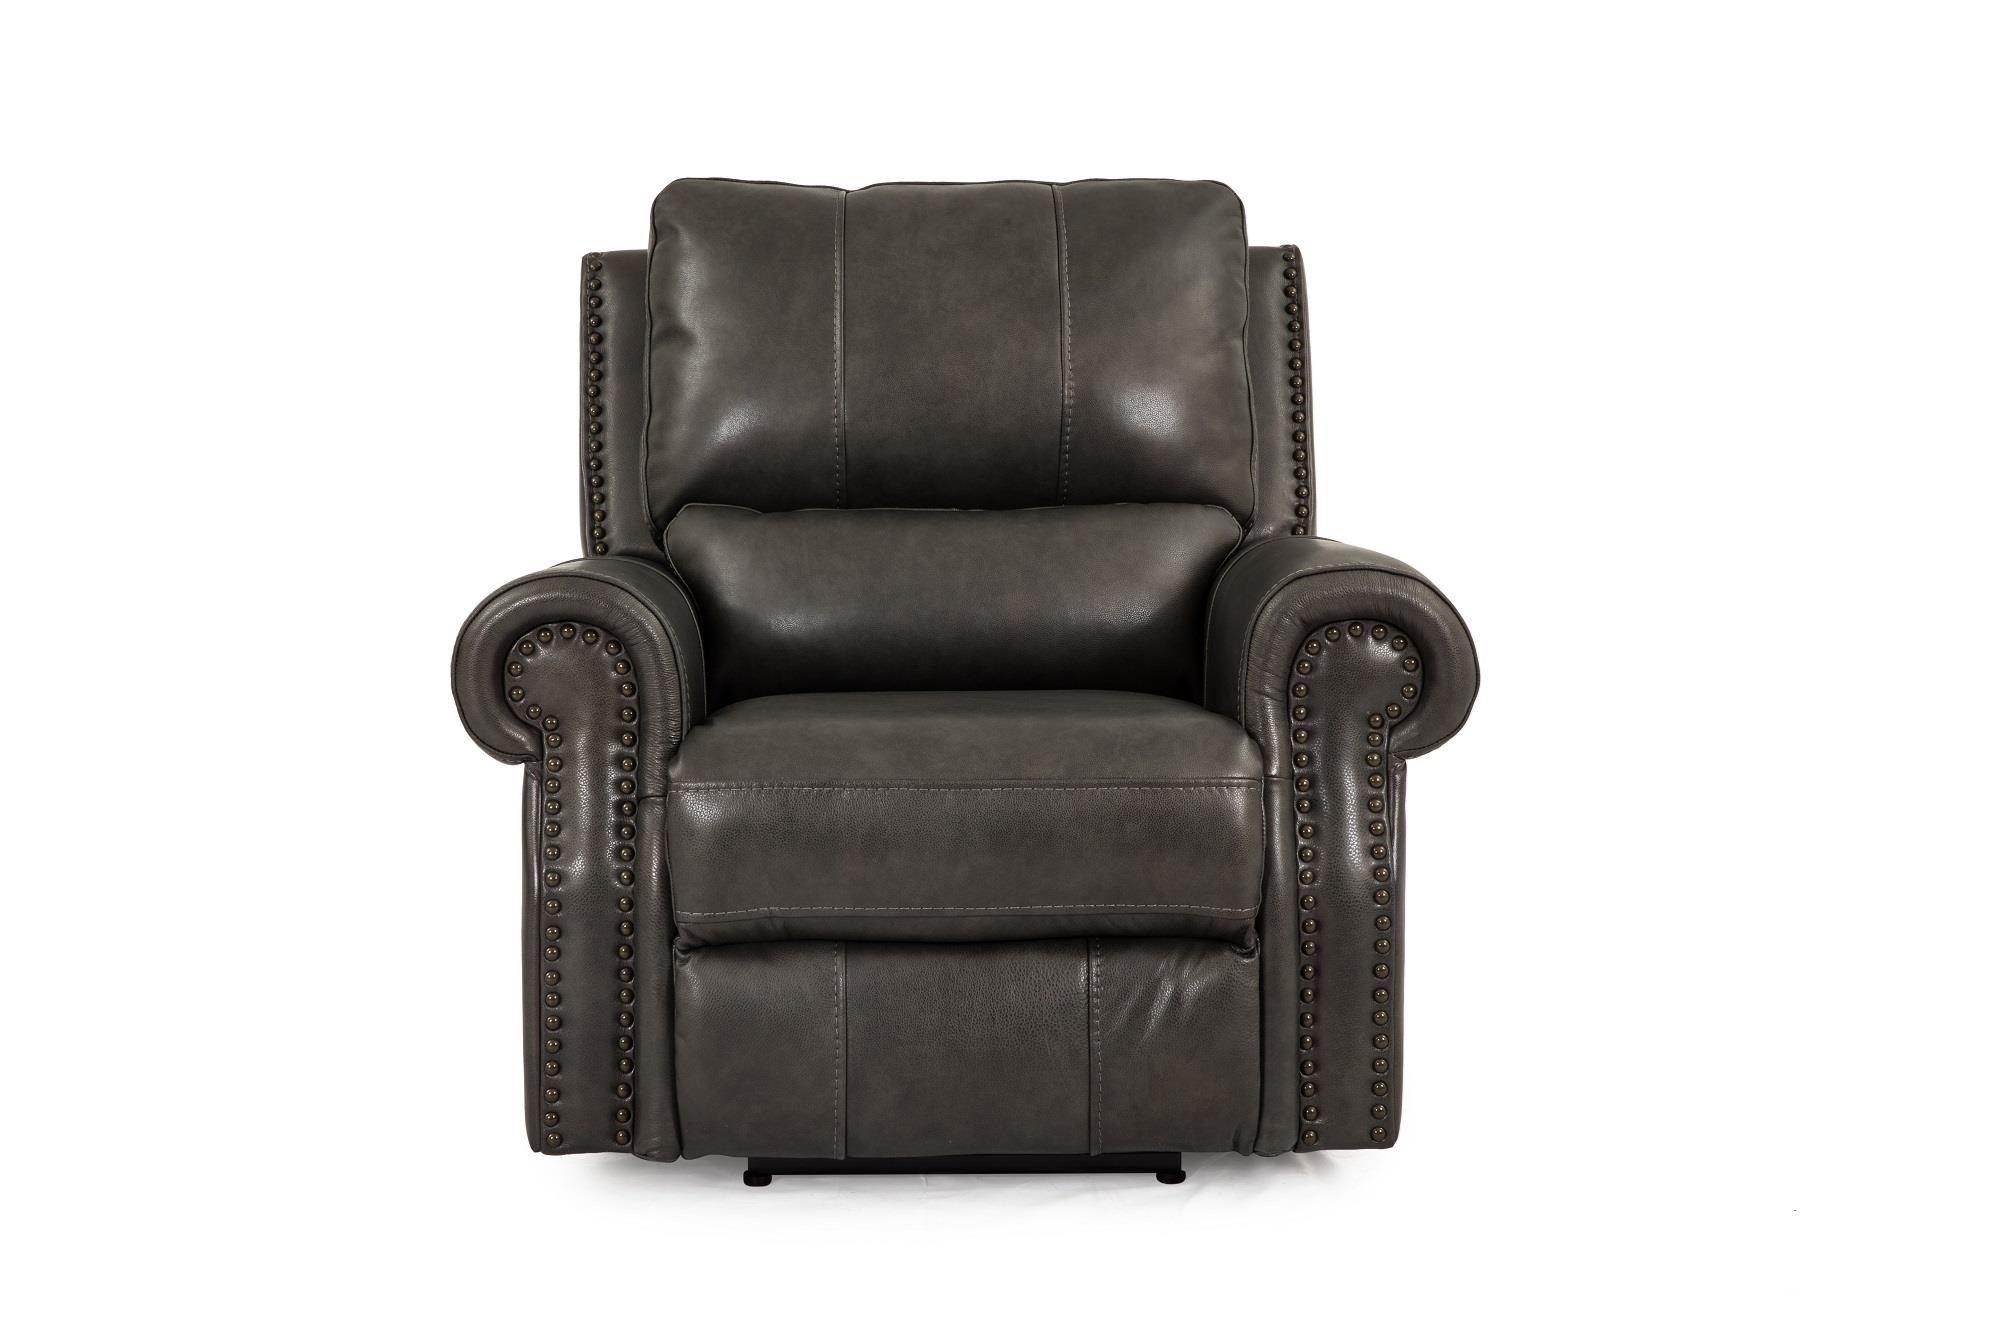 Cheers Sofa Steel Recliner w/Pwr Head & Foot - Item Number: UXW9919HM L1-1EH 30604